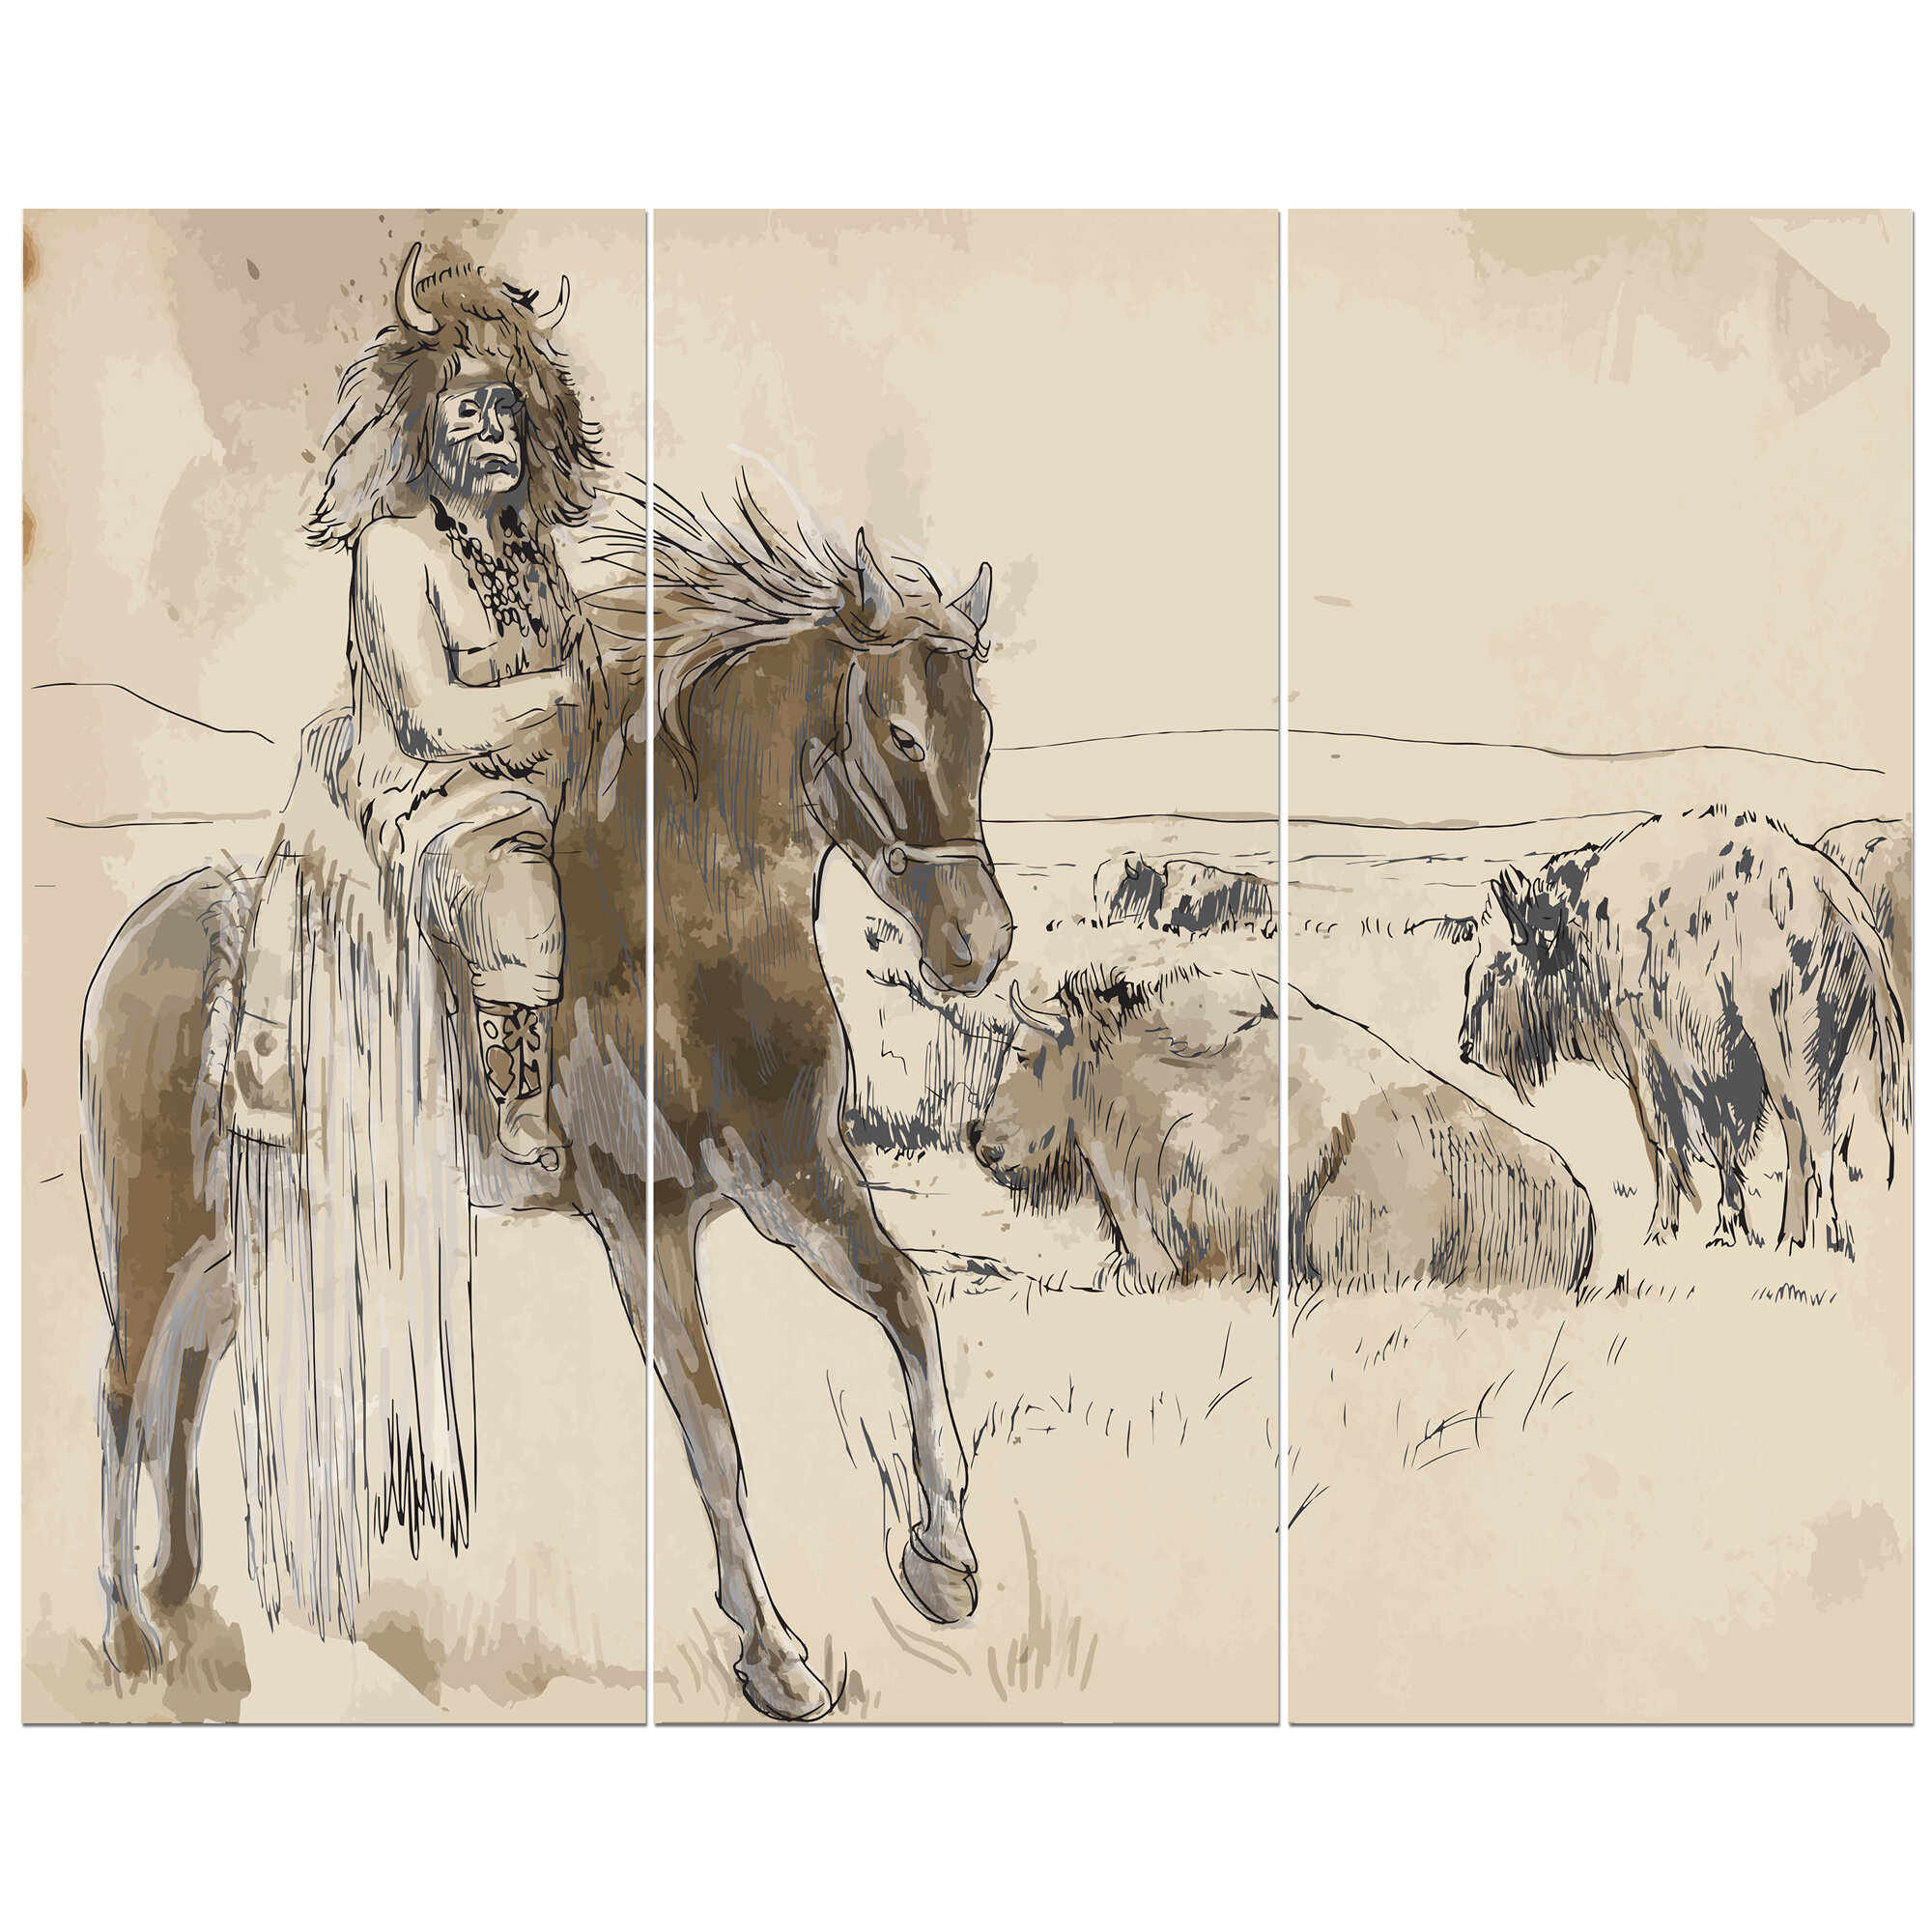 East Urban Home Sketch Of Indian Indian Chief Riding Horse Oil Painting Print Multi Piece Image On Wrapped Canvas